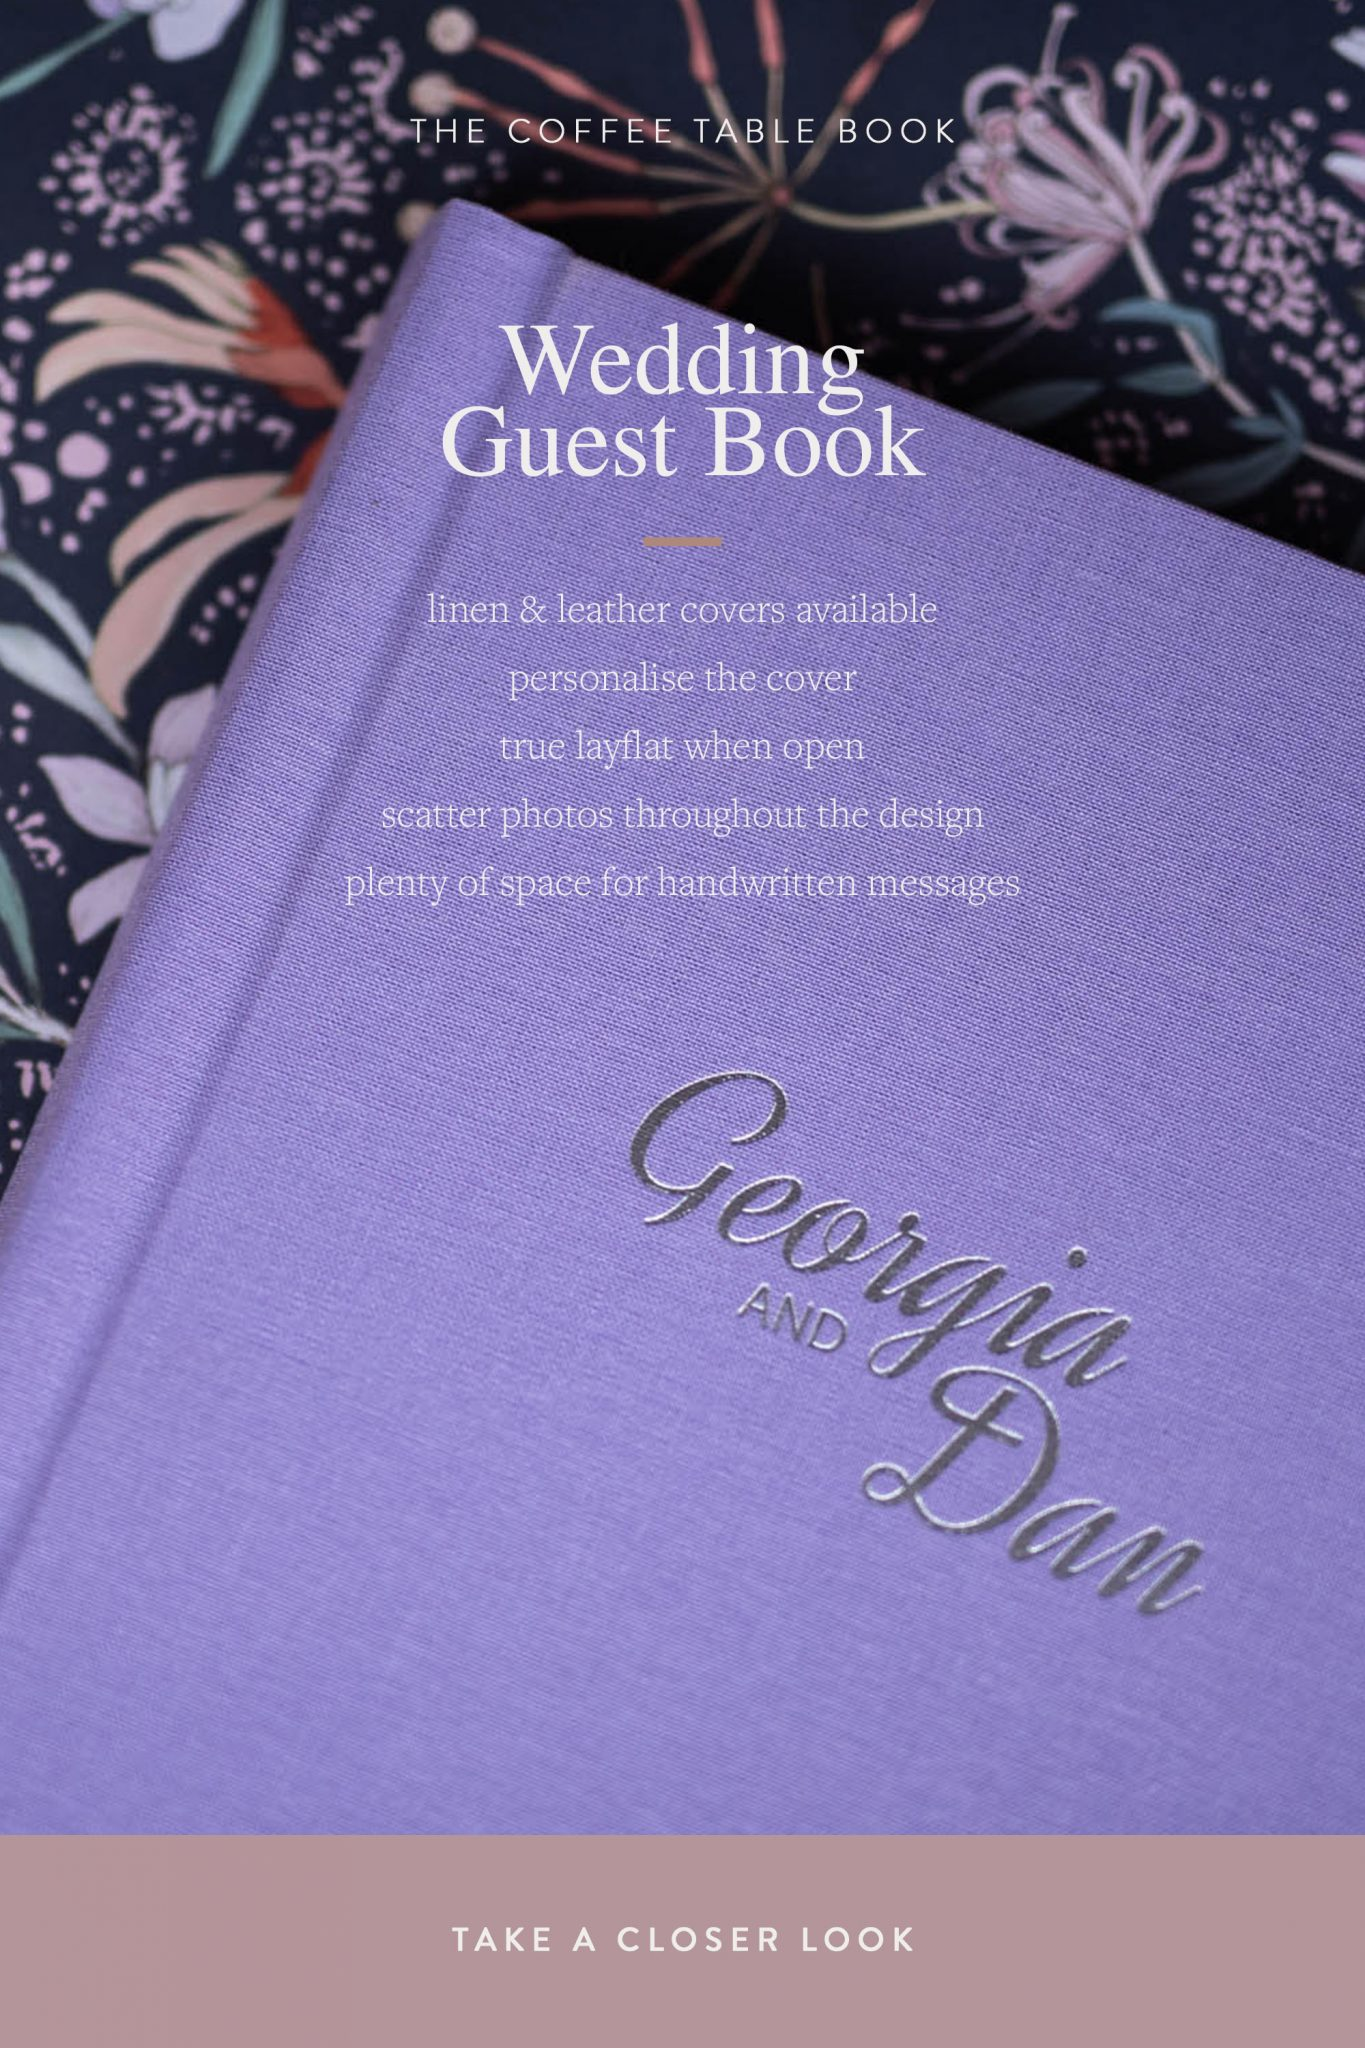 Wedding Guest Books - The Coffee Table Book. Unique Linen & Leather Guestbooks.